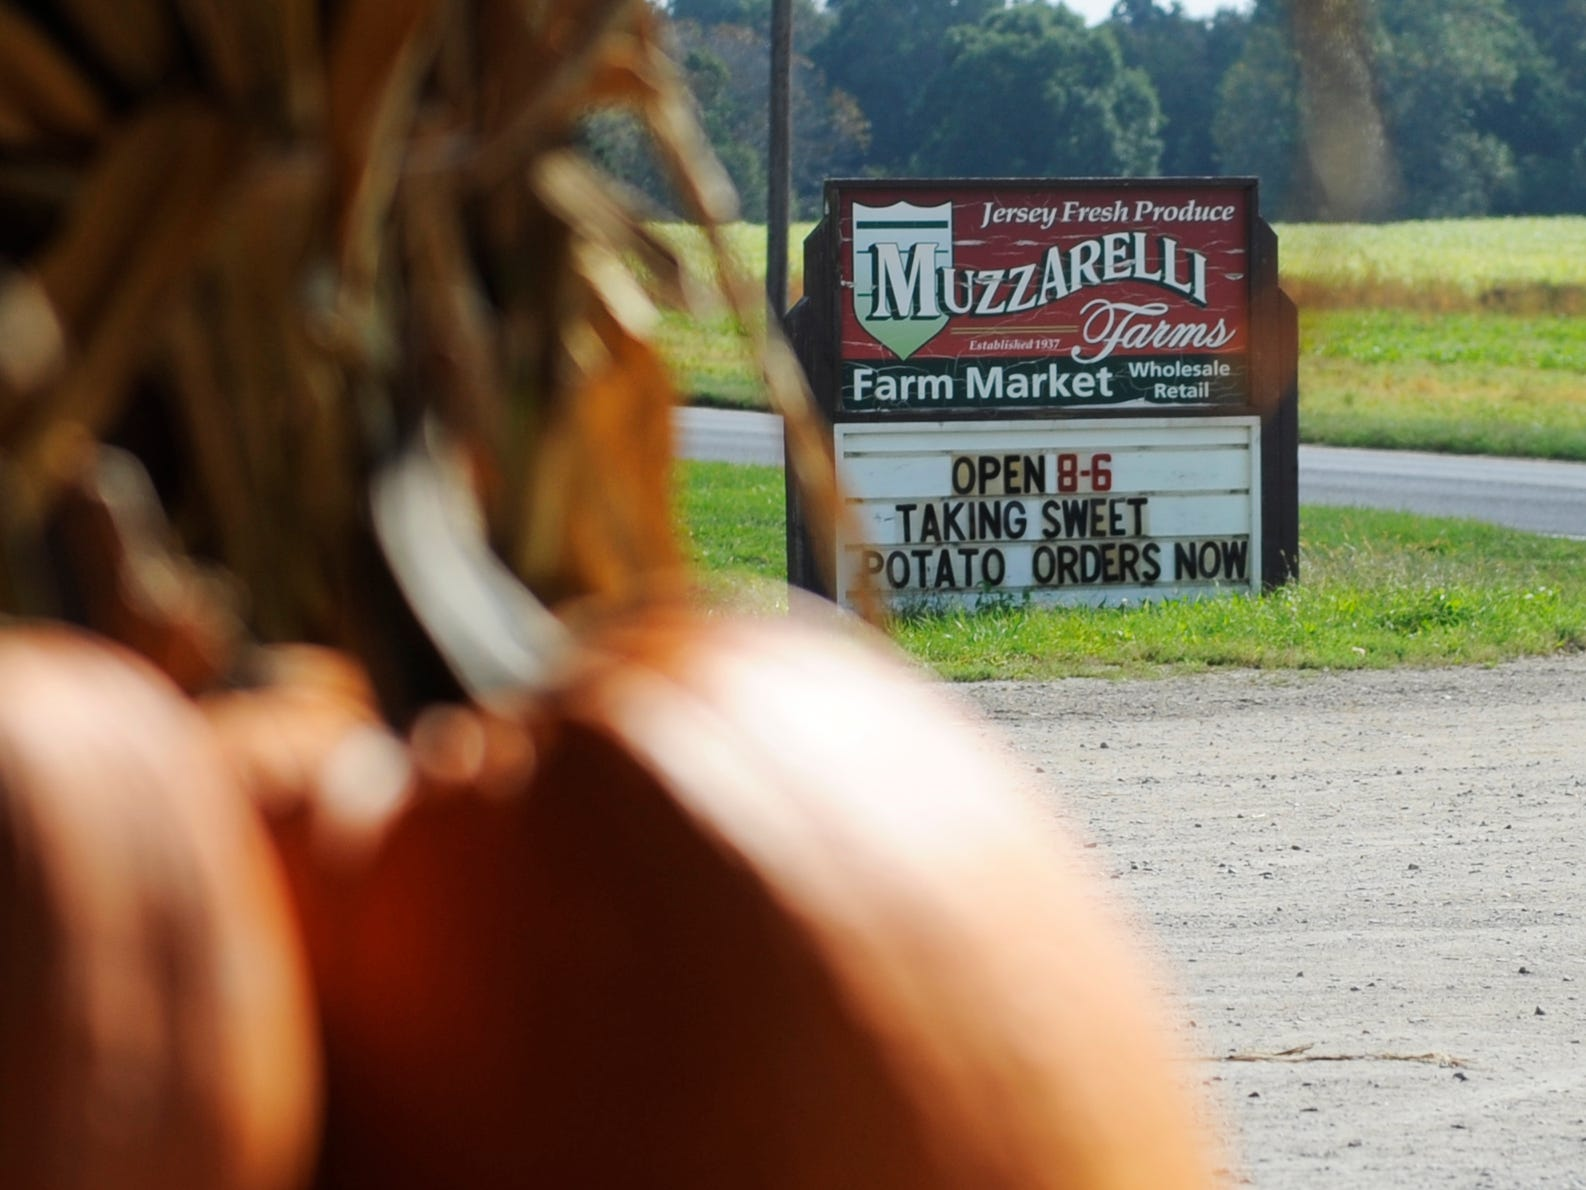 Muzzarelli Farms on East Oak Road in Vineland sells a large variety of fresh produce including pumpkins just in time for Halloween.